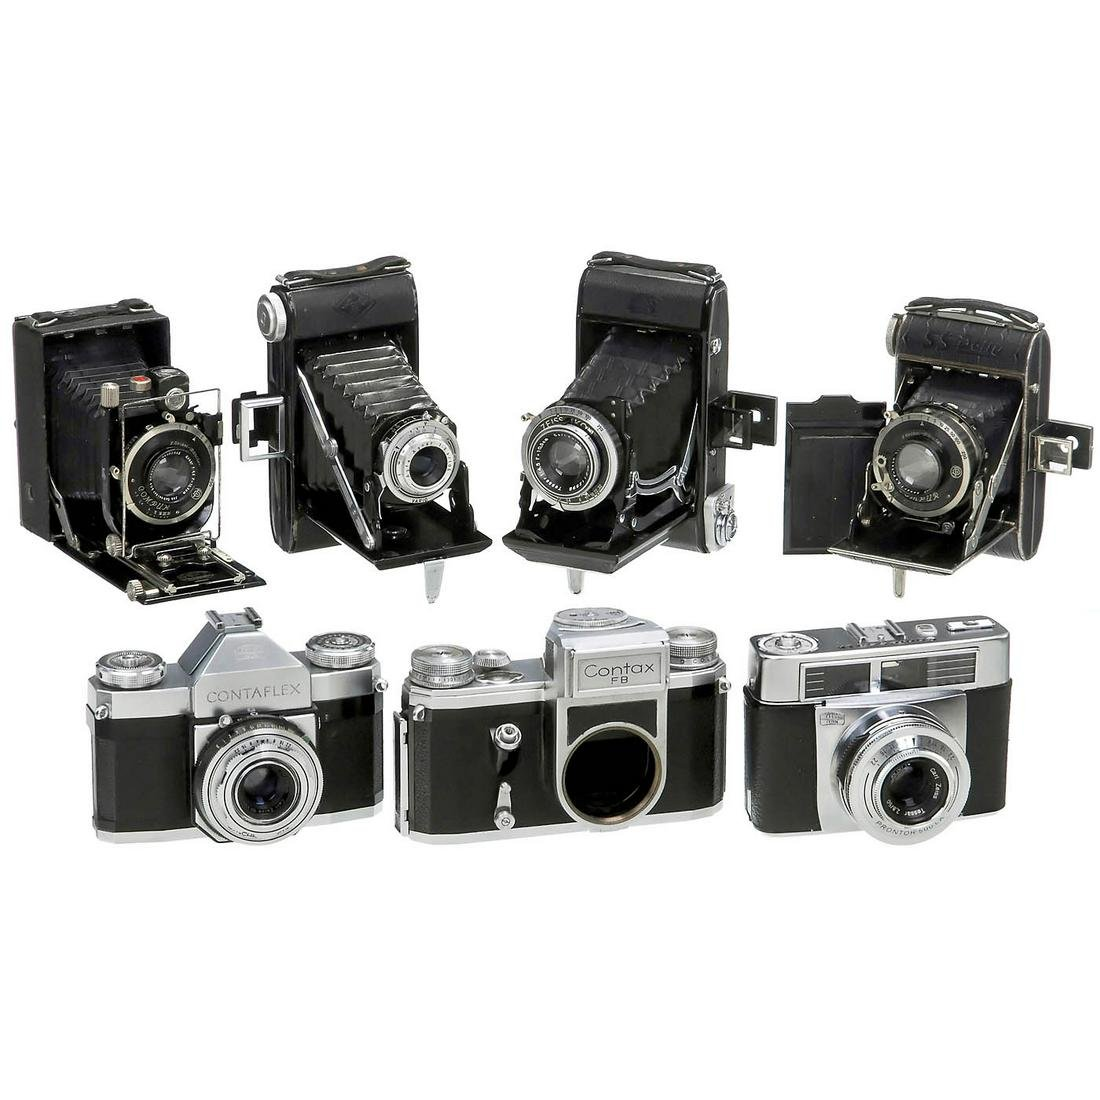 Mixed Lot of 7 Cameras